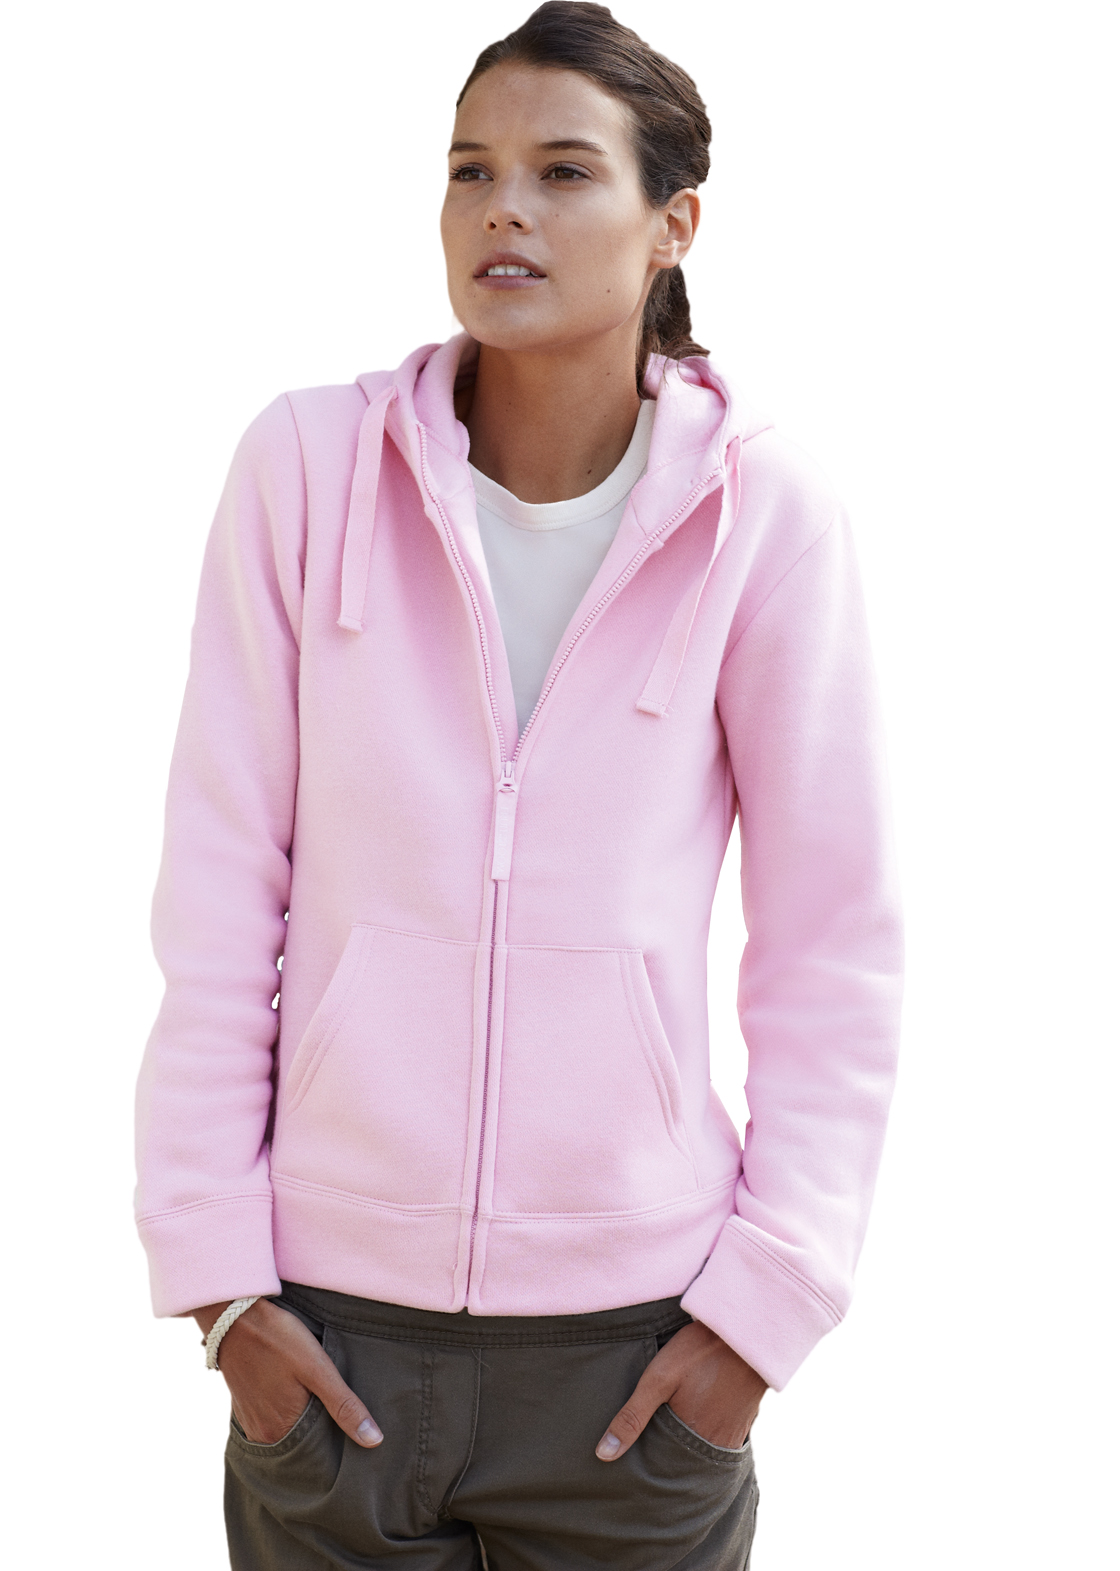 Fruit of the Loom Lady Fit Hooded Jacket